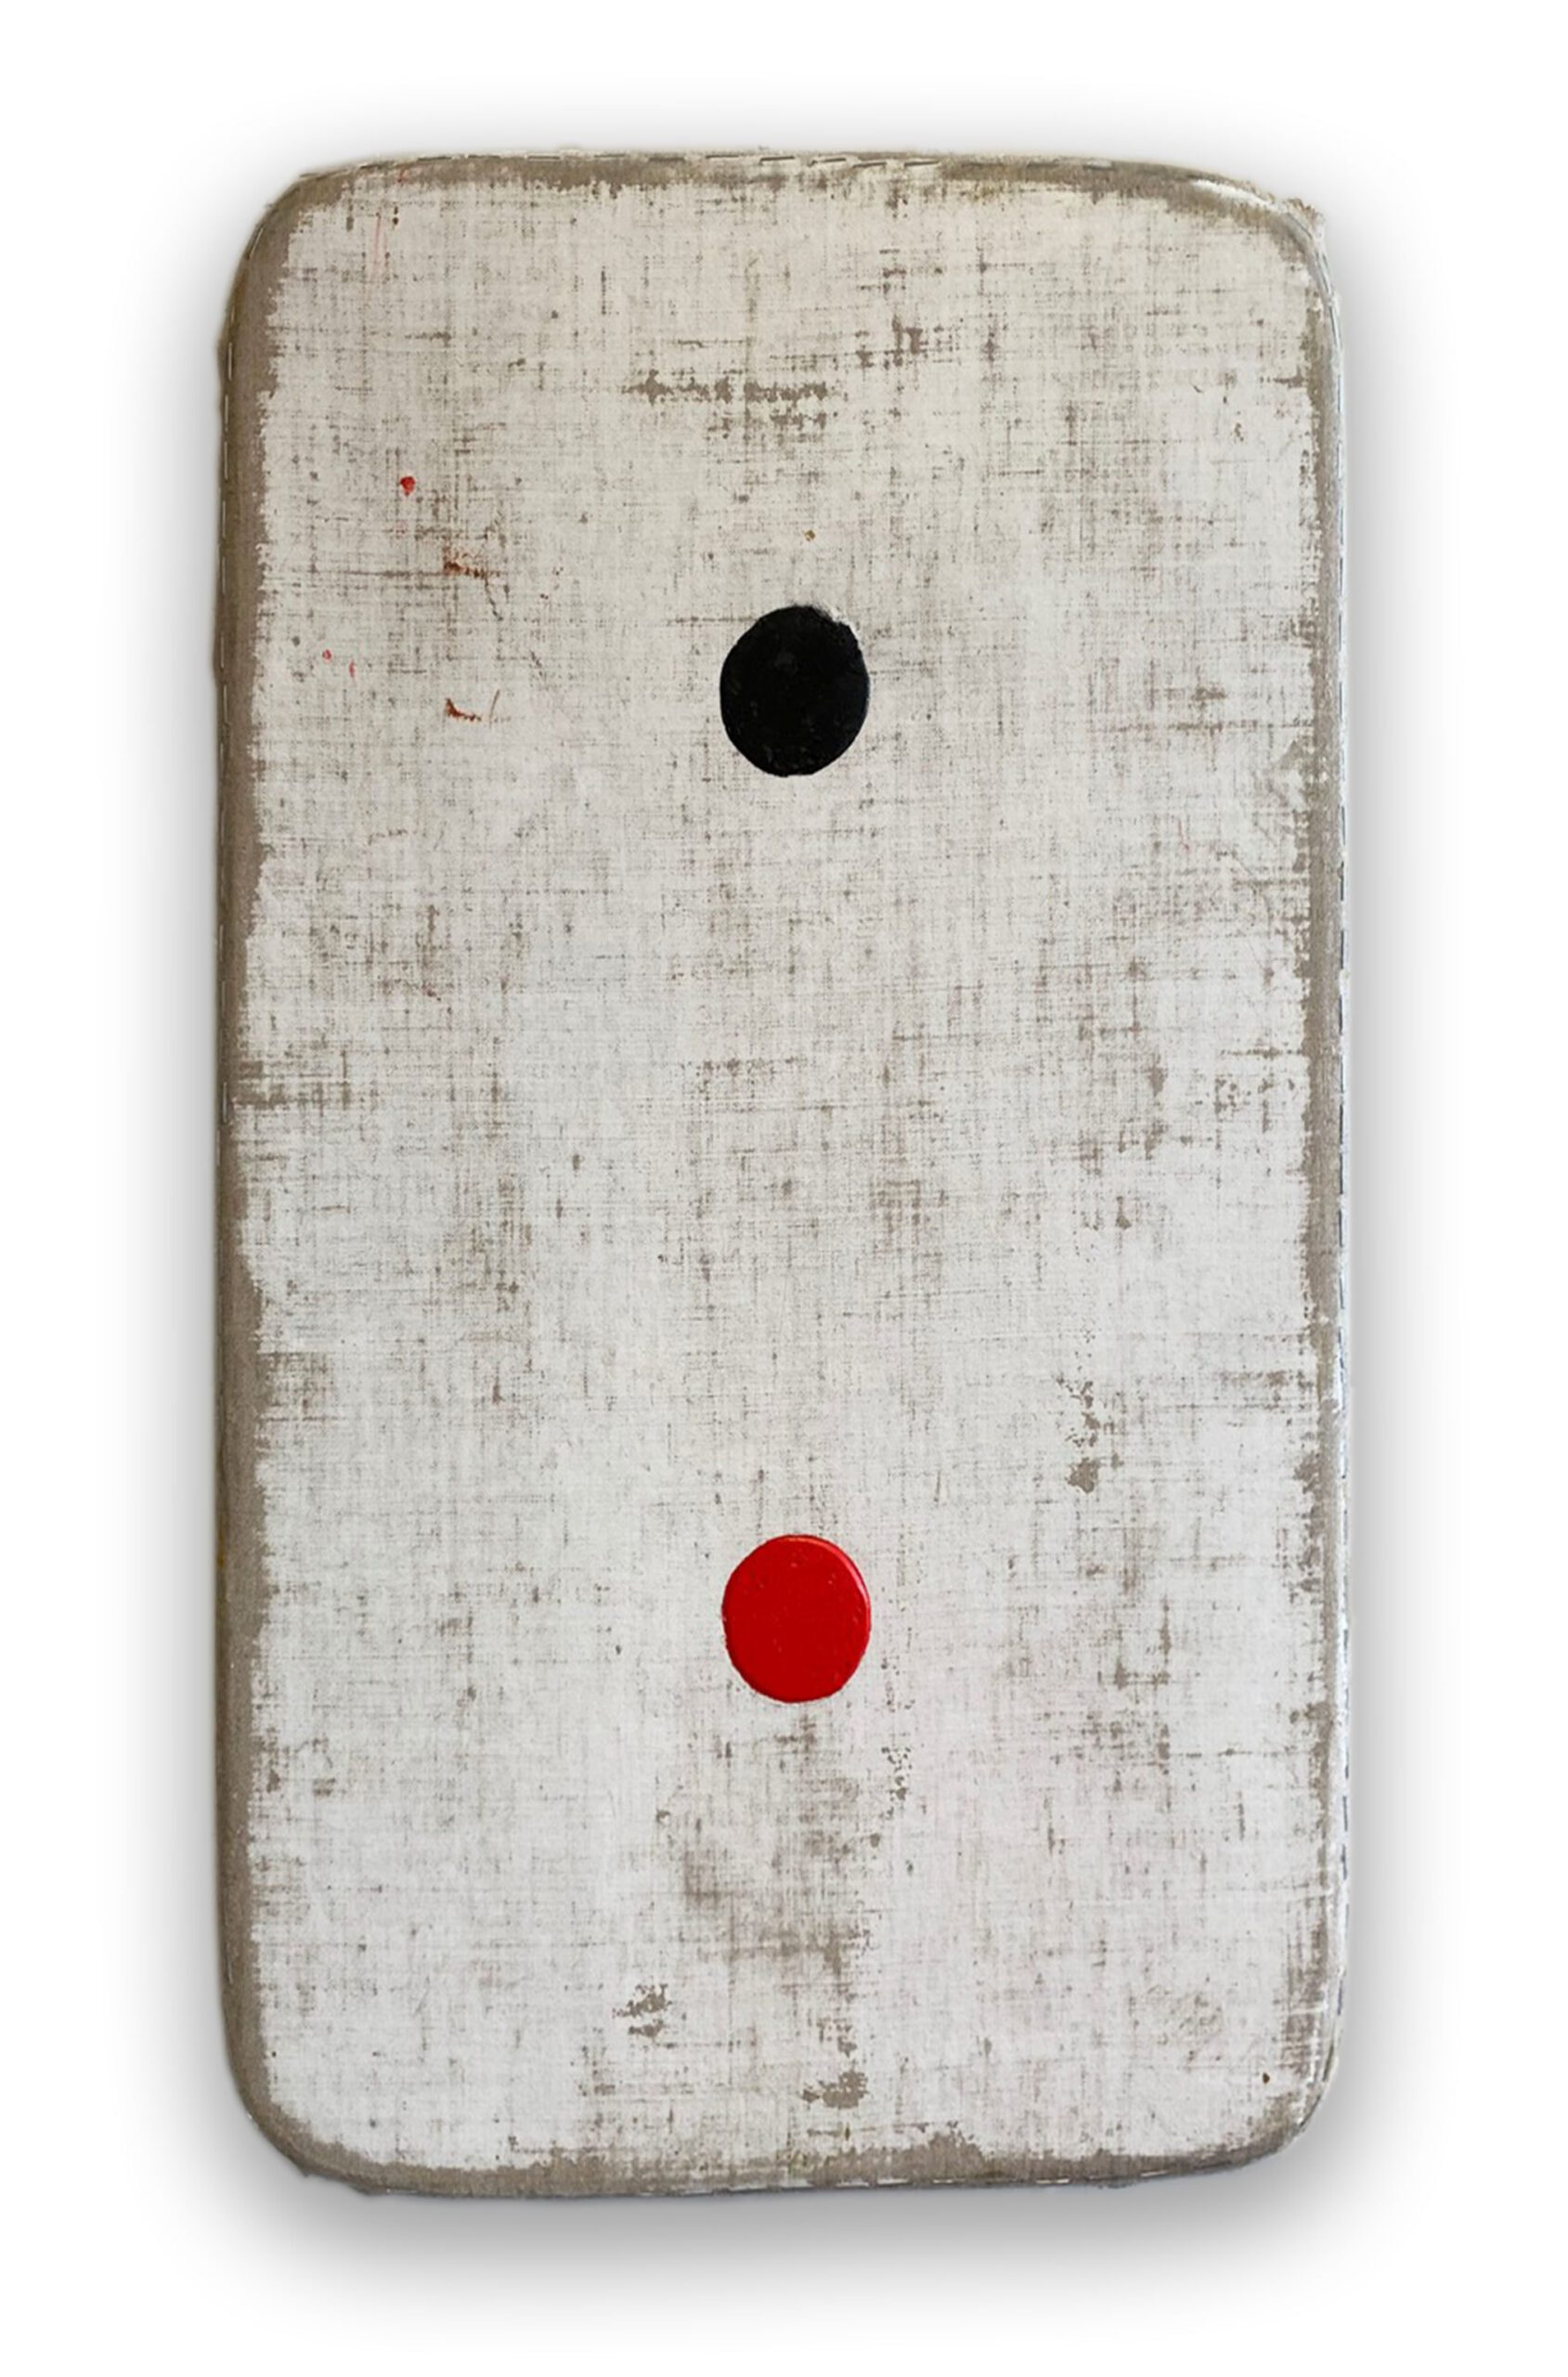 Duck Soup White Rectangle with Black and Red Circles, 2020 Acrylic on linen on wood 24 x 15 x 3 in (61 x 38 x 7.6 cm) 2020 Marc Straus Gallery